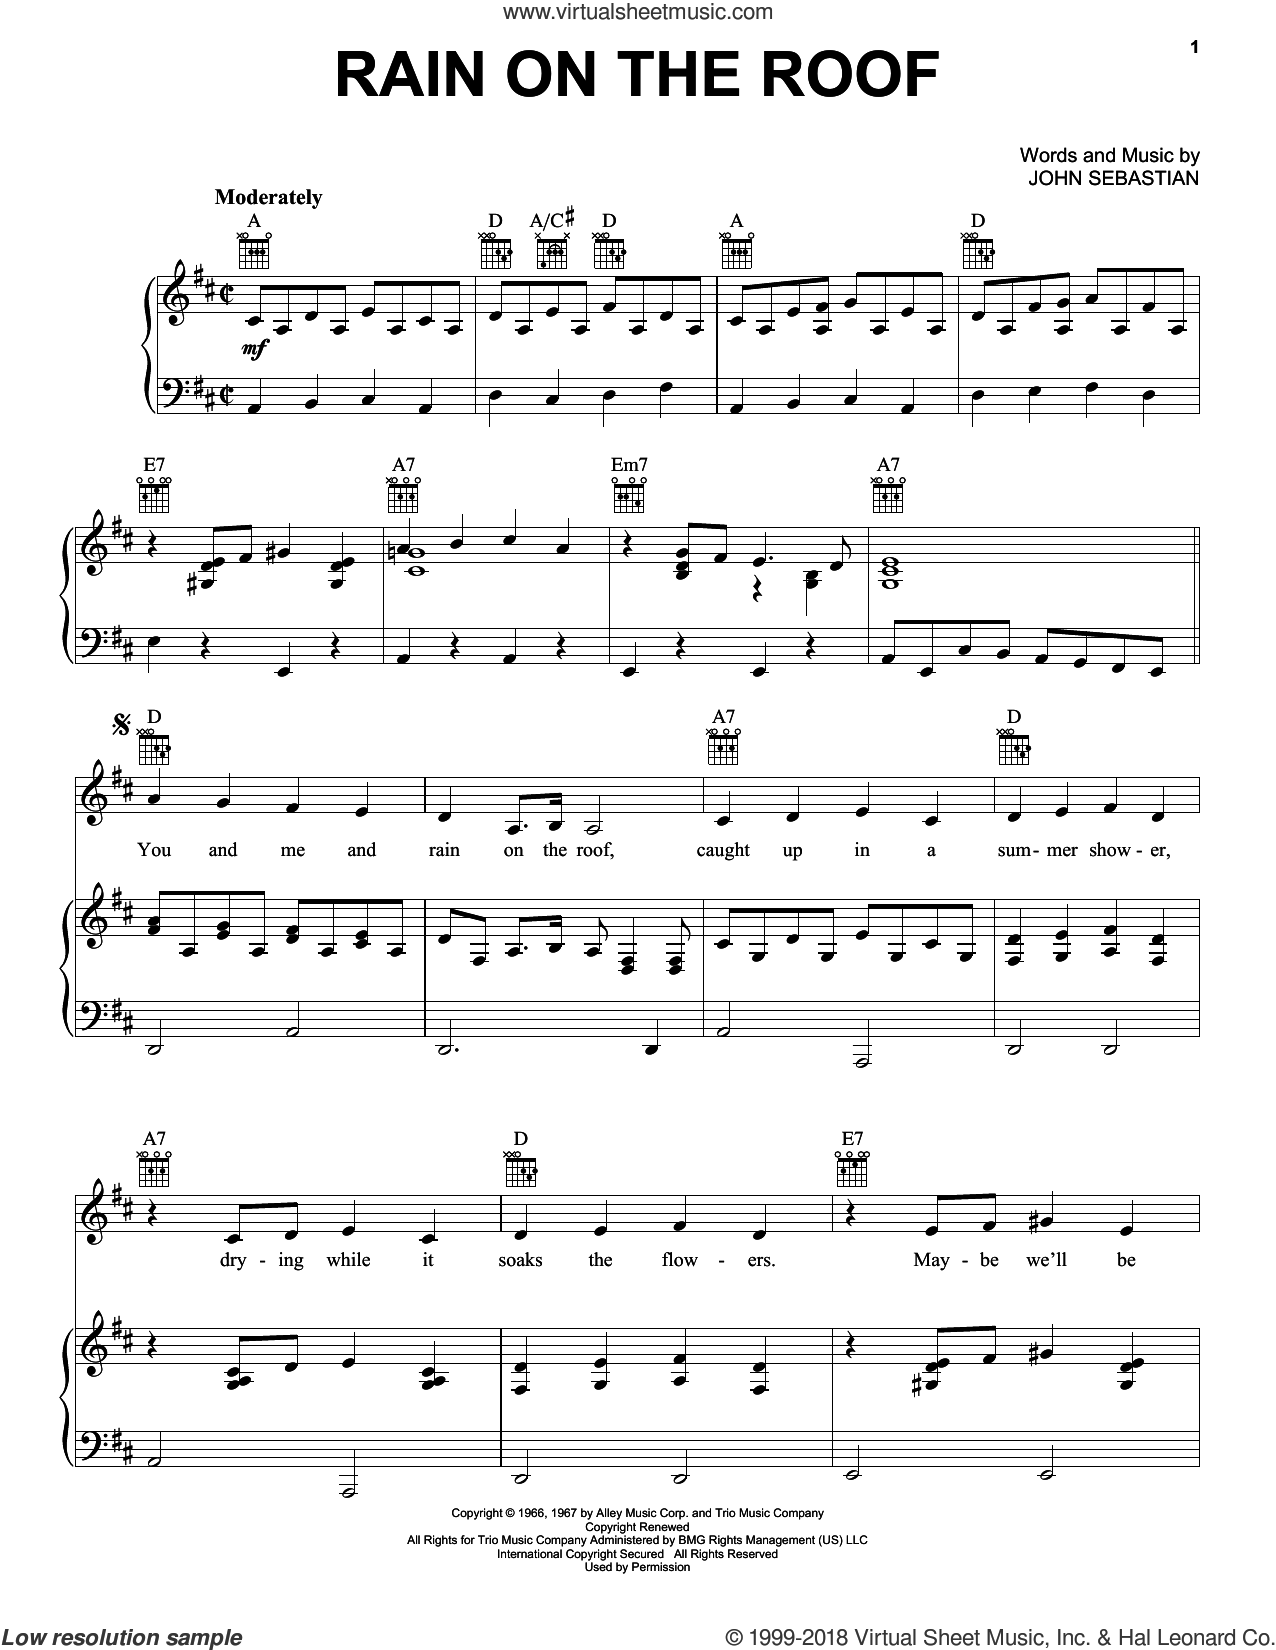 Rain On The Roof sheet music for voice, piano or guitar by Lovin' Spoonful and John Sebastian, intermediate skill level